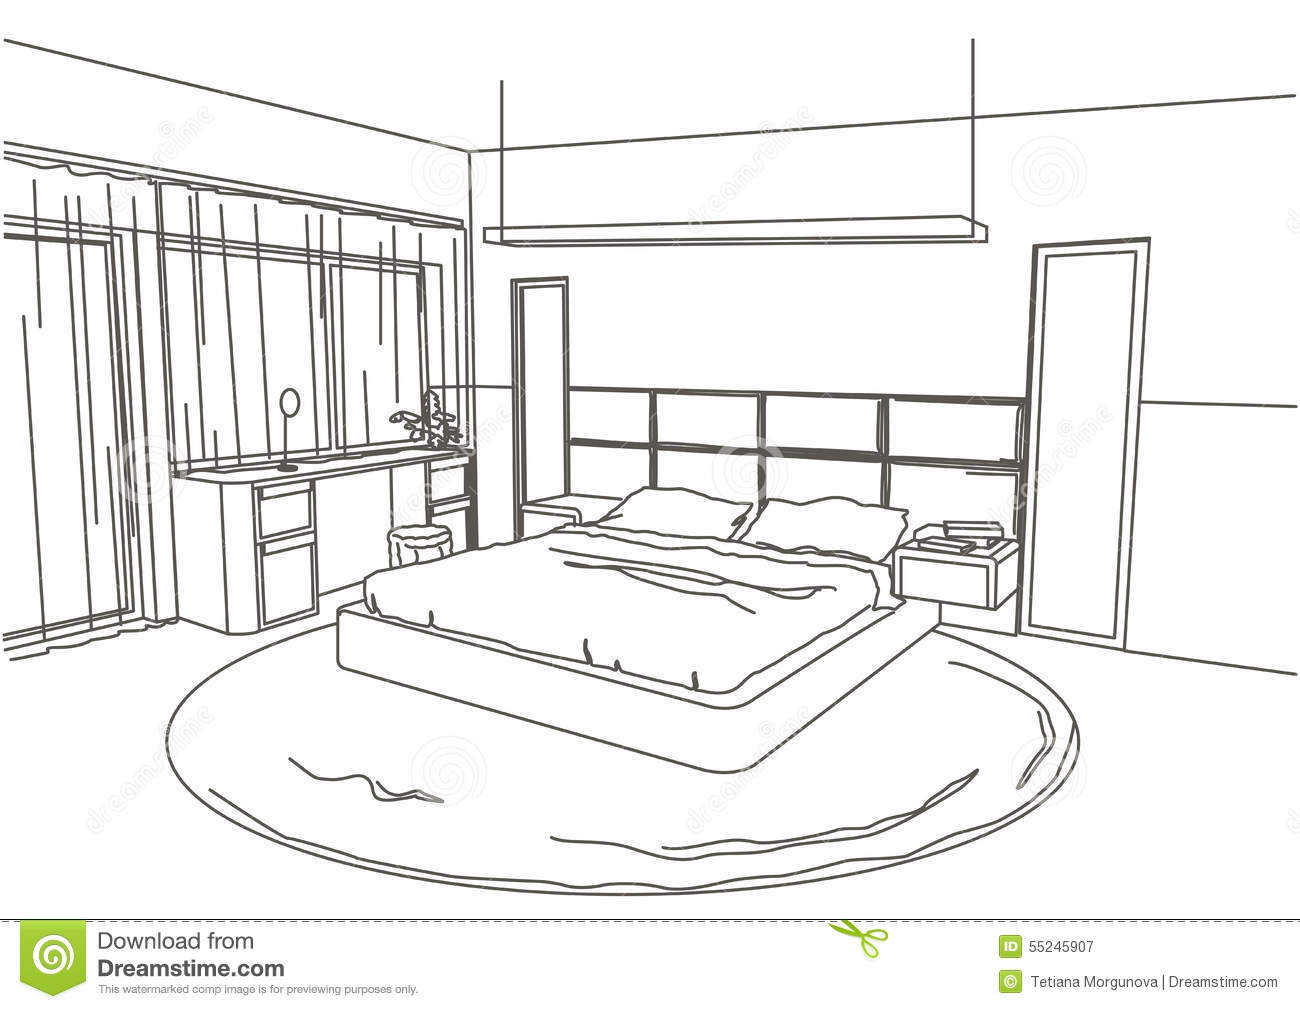 Chambre En 3d Dessin Linear Architectural Sketch Interior Modern Bedroom Stock